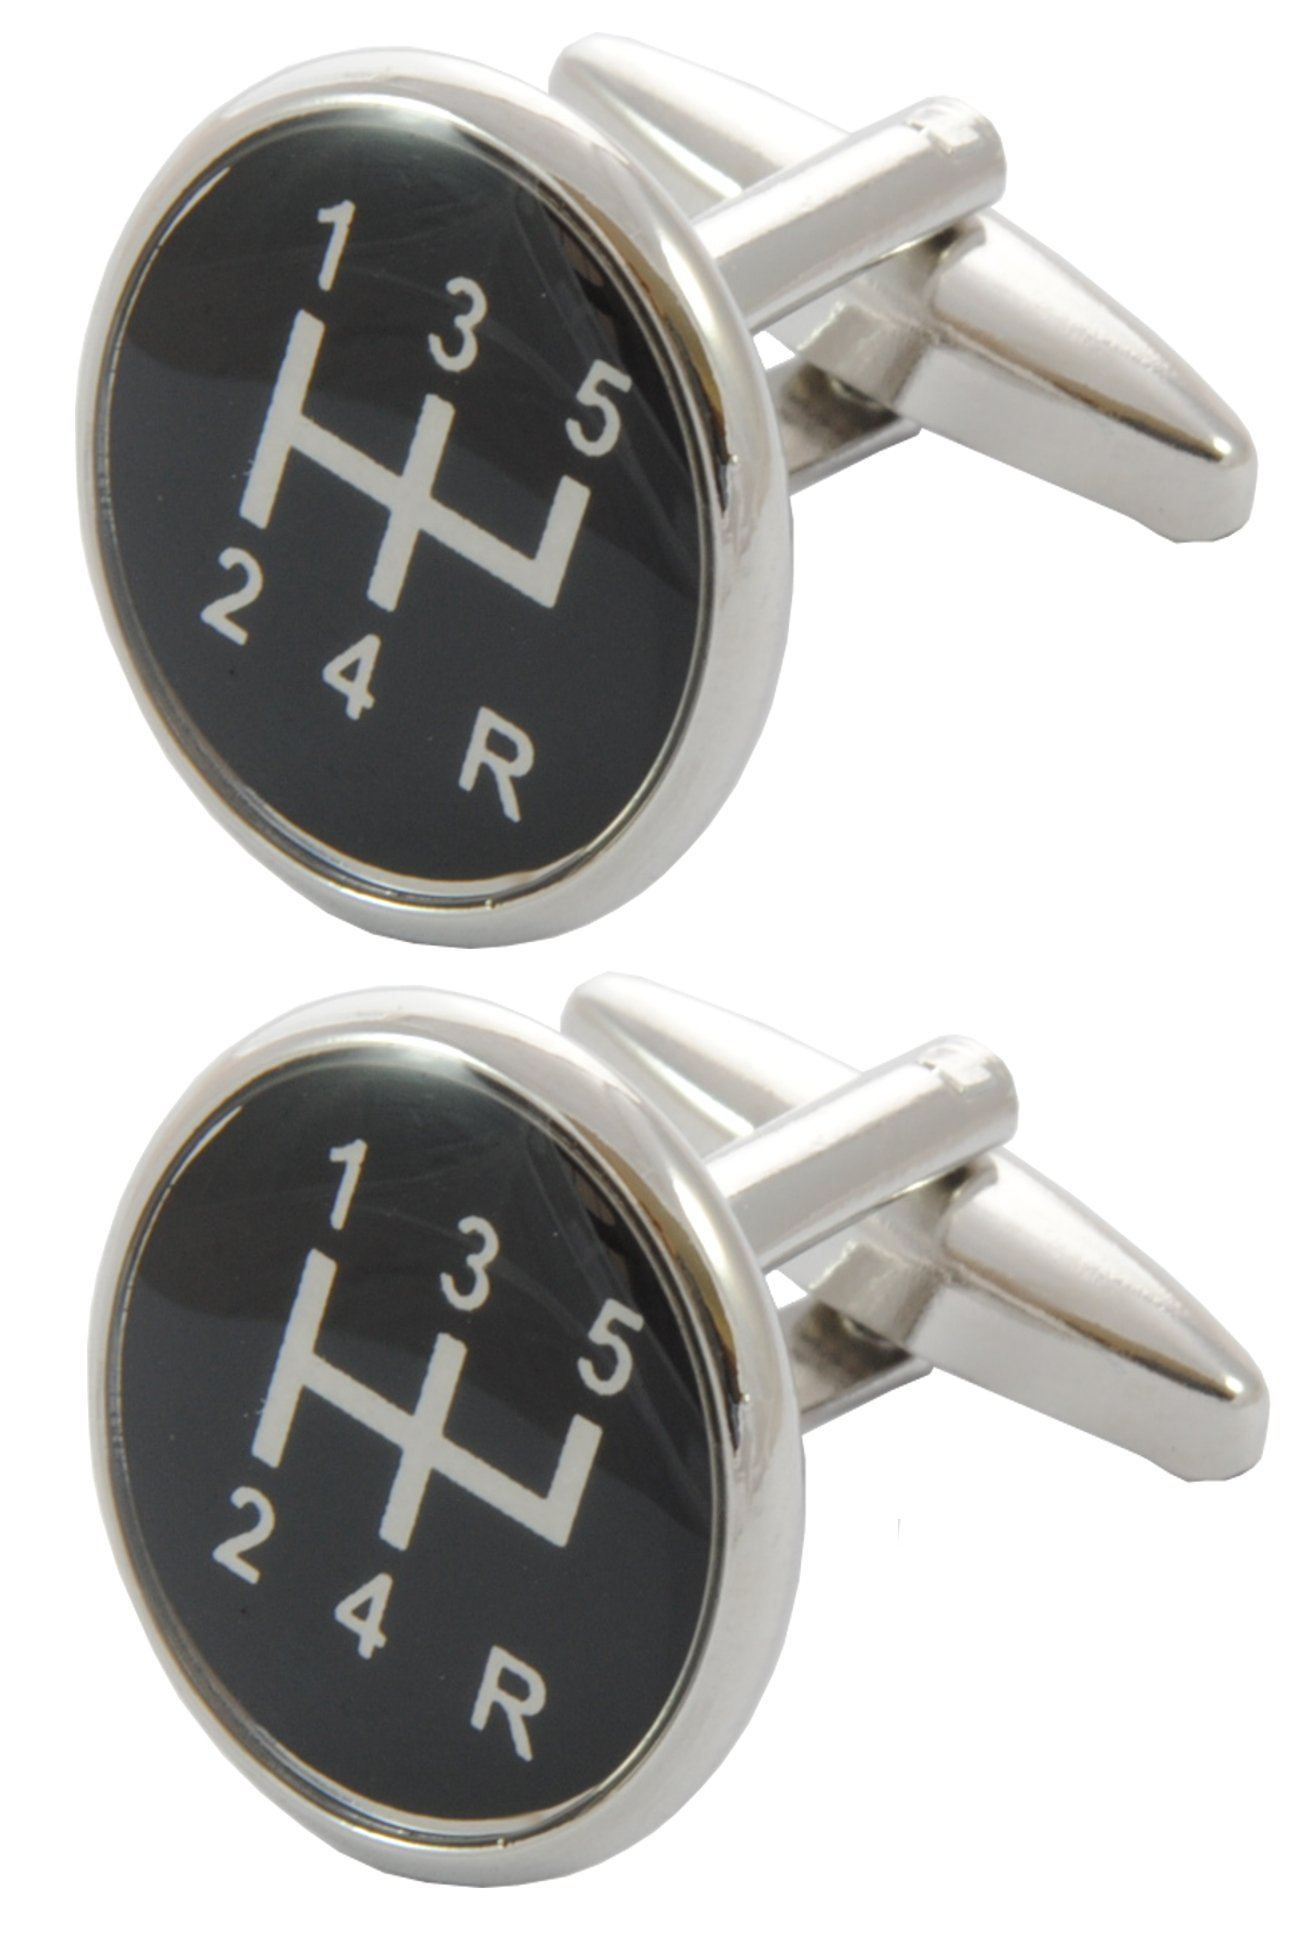 COLLAR AND CUFFS LONDON - Premium Cufflinks with Gift Box - Gear Stick - Perfect for Car Lovers - Solid Brass - Round Gear Knob Shift - Black and White Colours